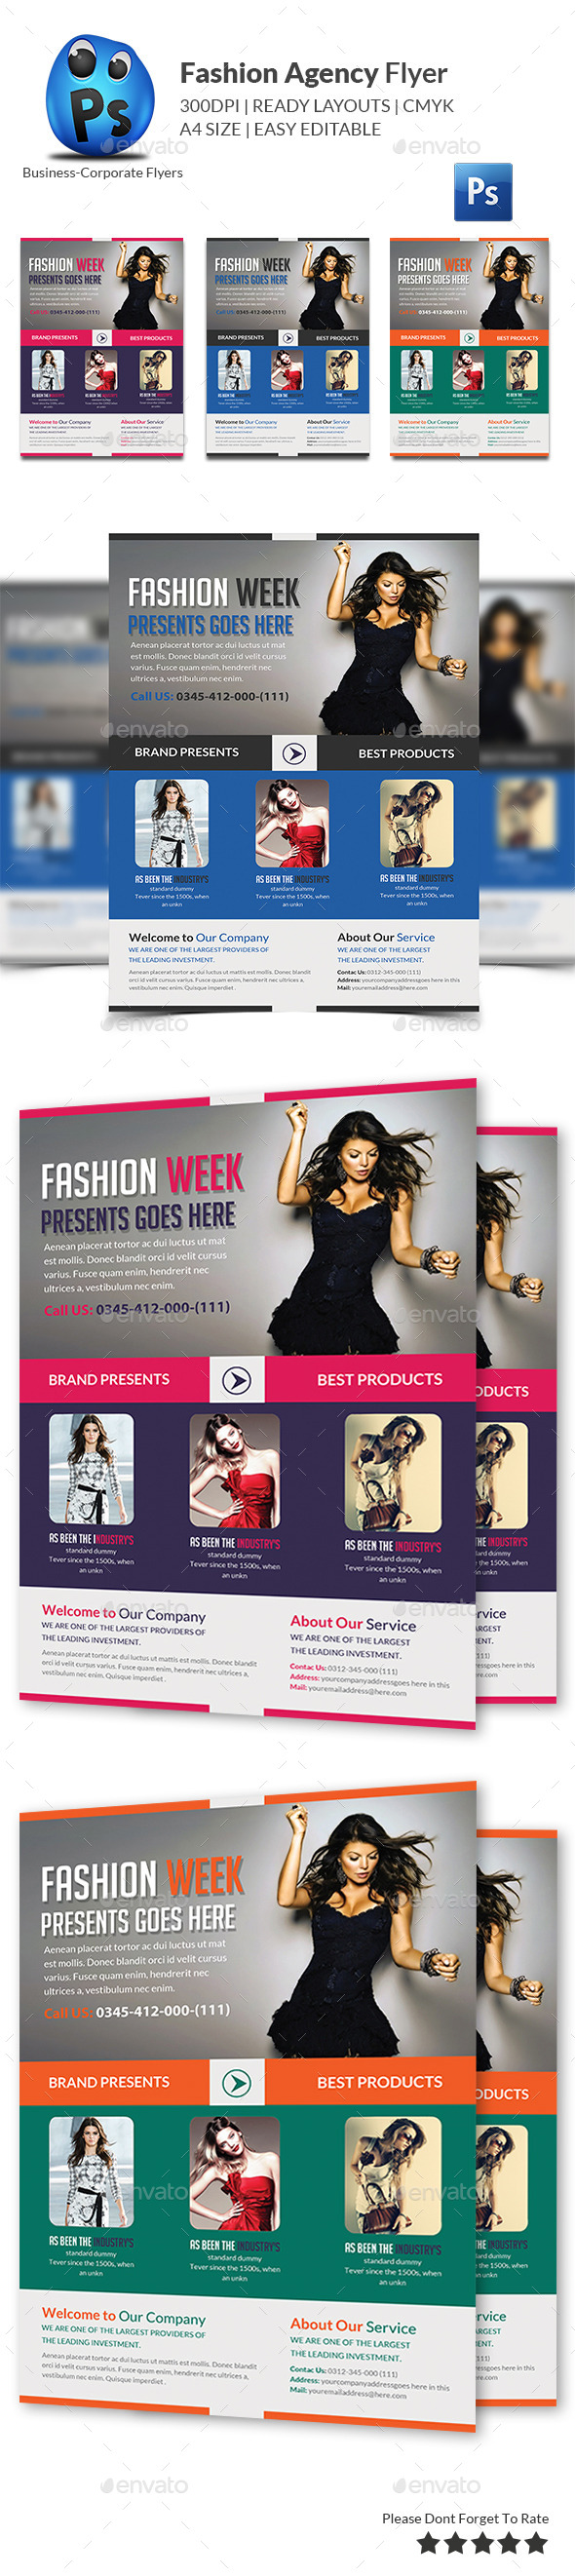 GraphicRiver Fashion Agency Flyer 11119313